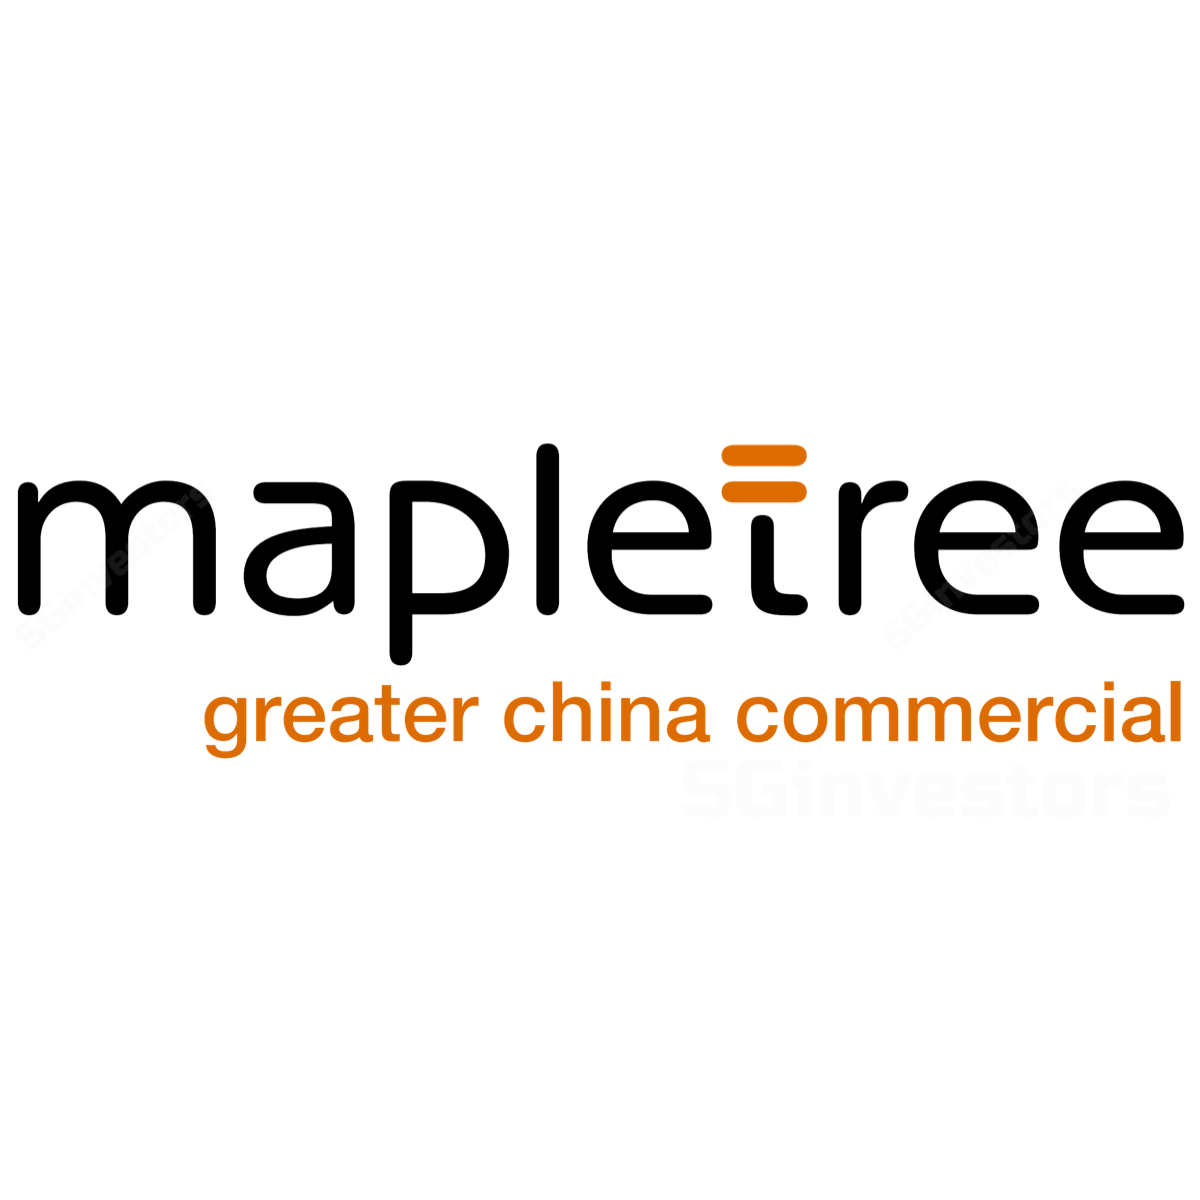 Mapletree Greater China Commercial Trust - DBS Vickers 2017-01-04: Only a speed hump